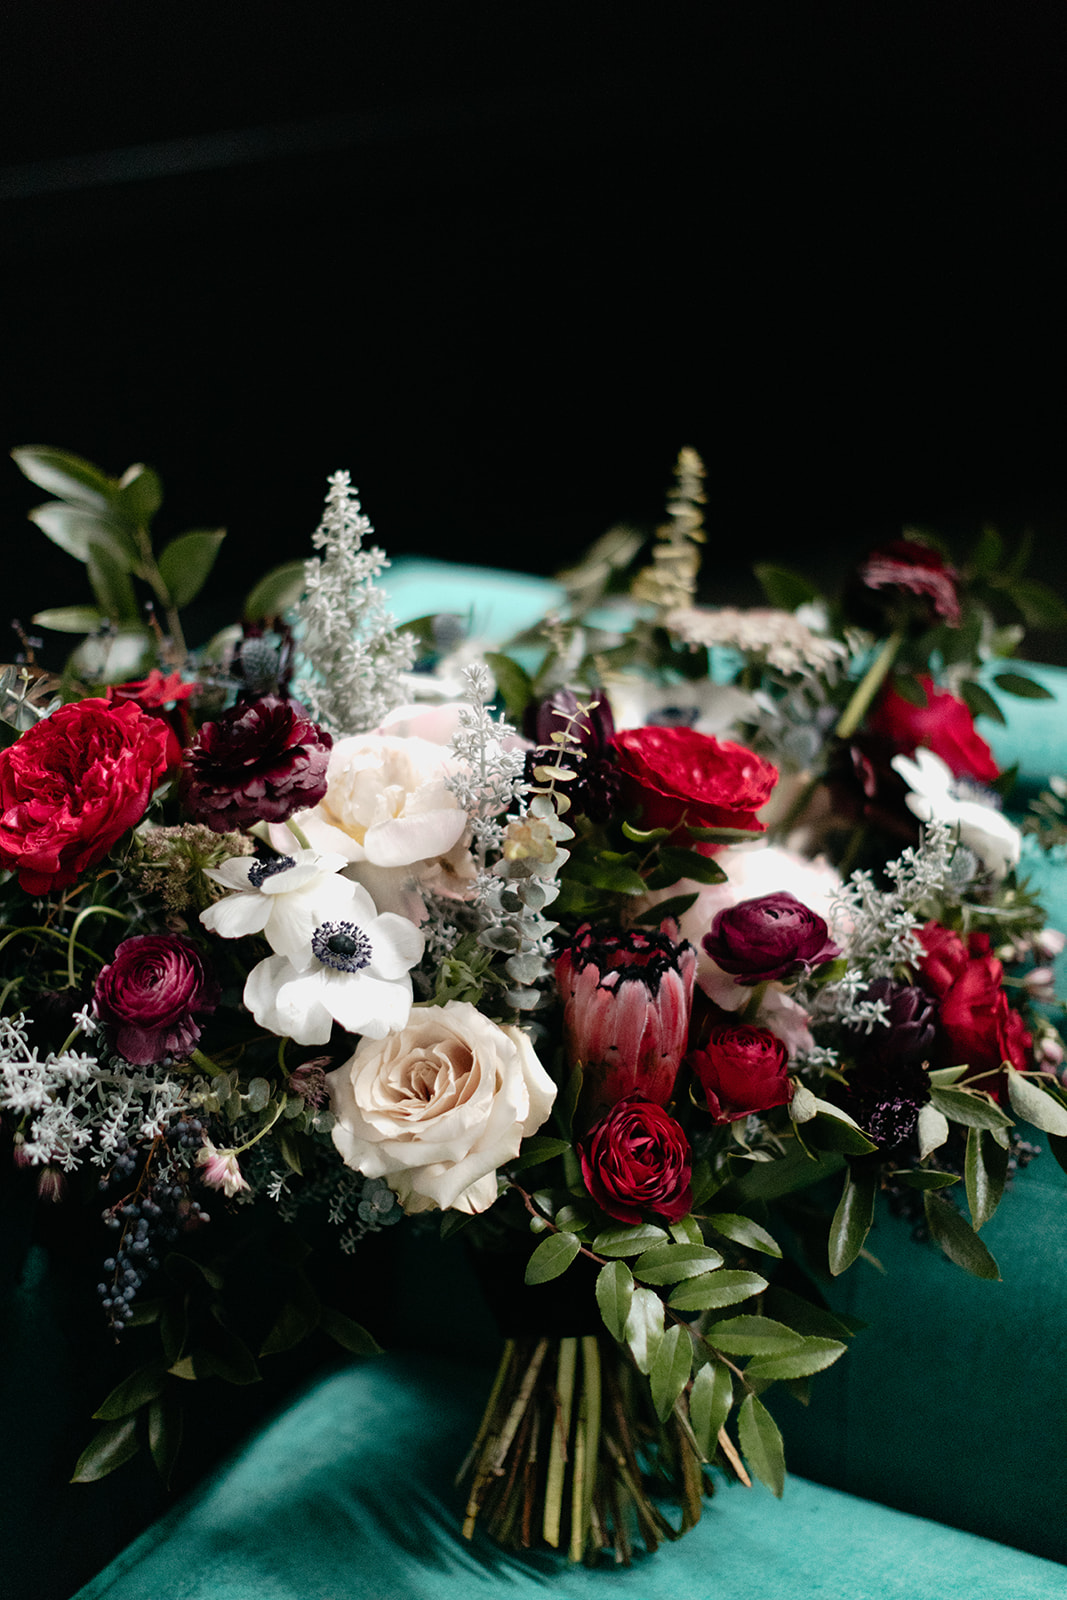 Lush, wintry bridal bouquet with garden roses, anemones, ranunculus, and greenery. Nashville Wedding Florist.